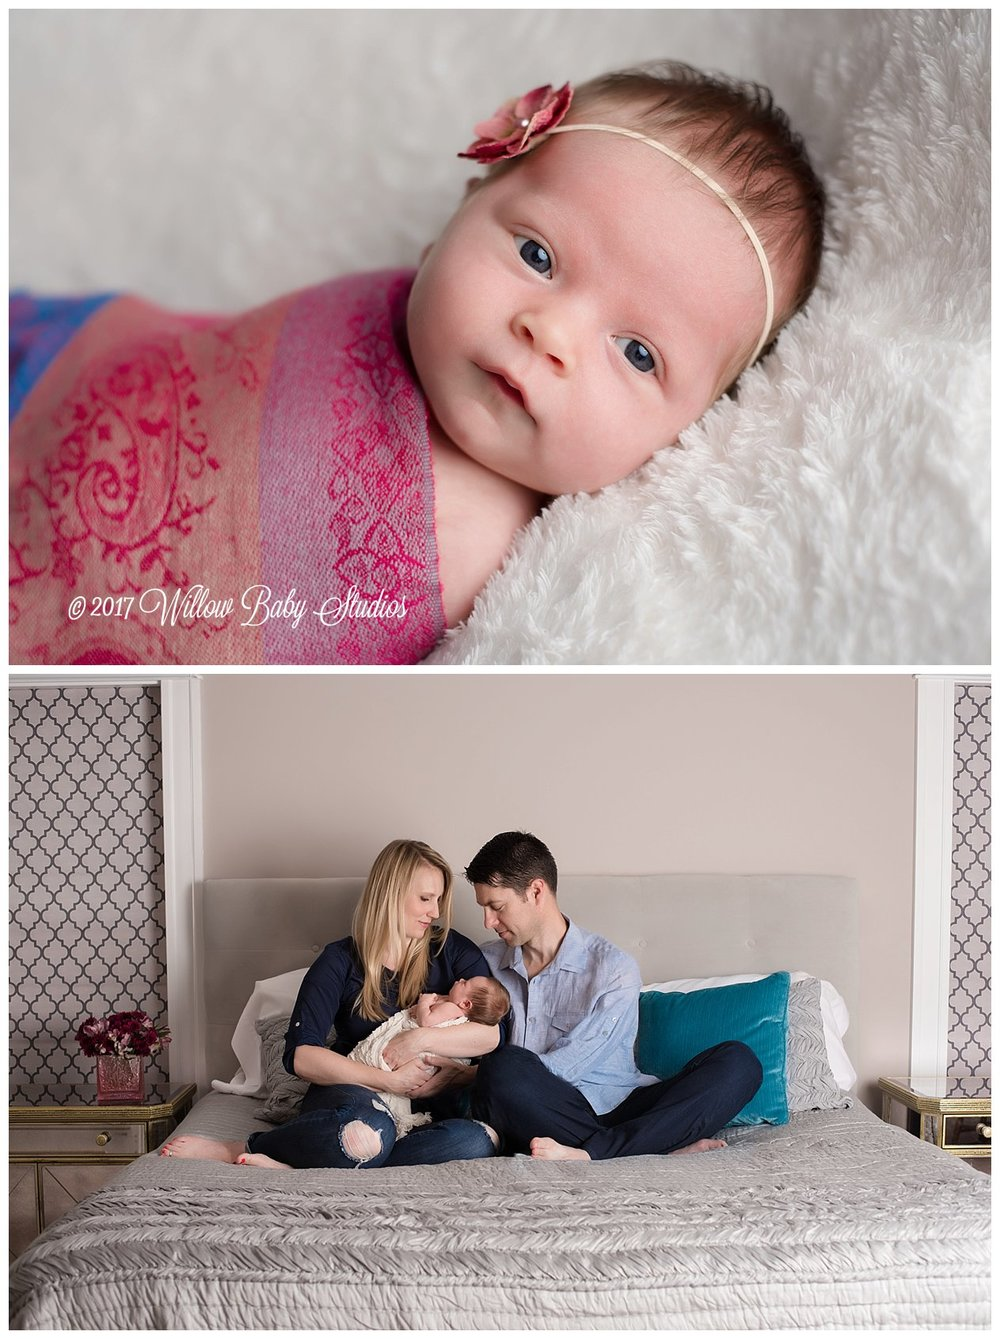 set of two photos awake newborn staring at the camera and parents gazing at their newborn baby